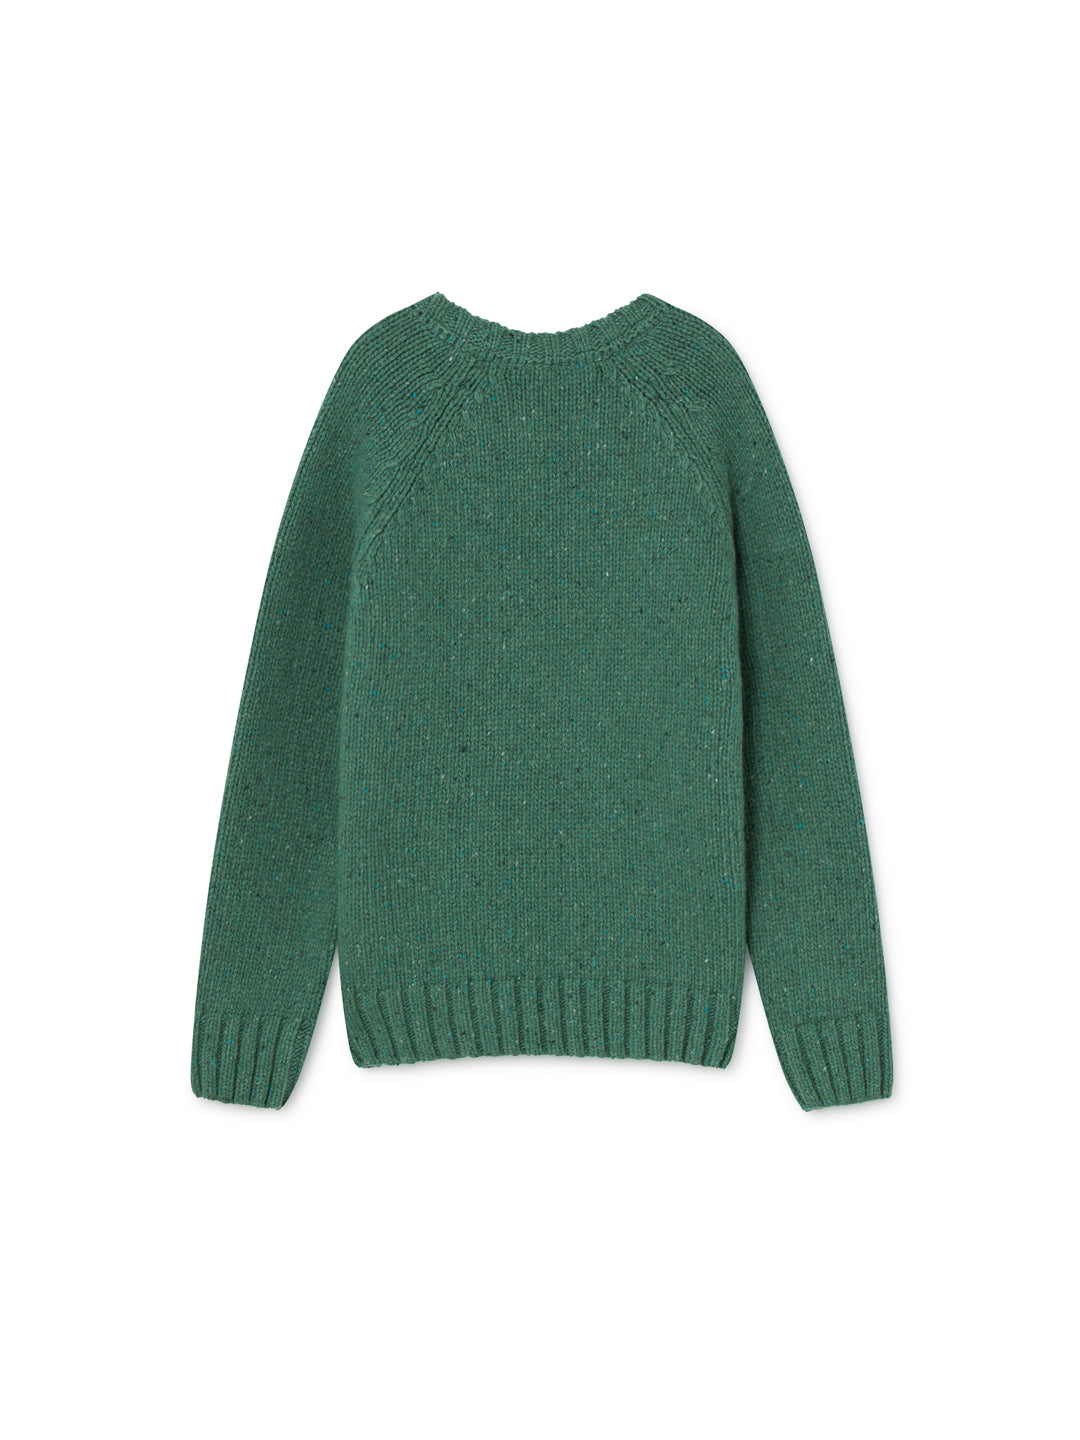 TWOTHIRDS Womens Knit: Jurma - Sage Green back